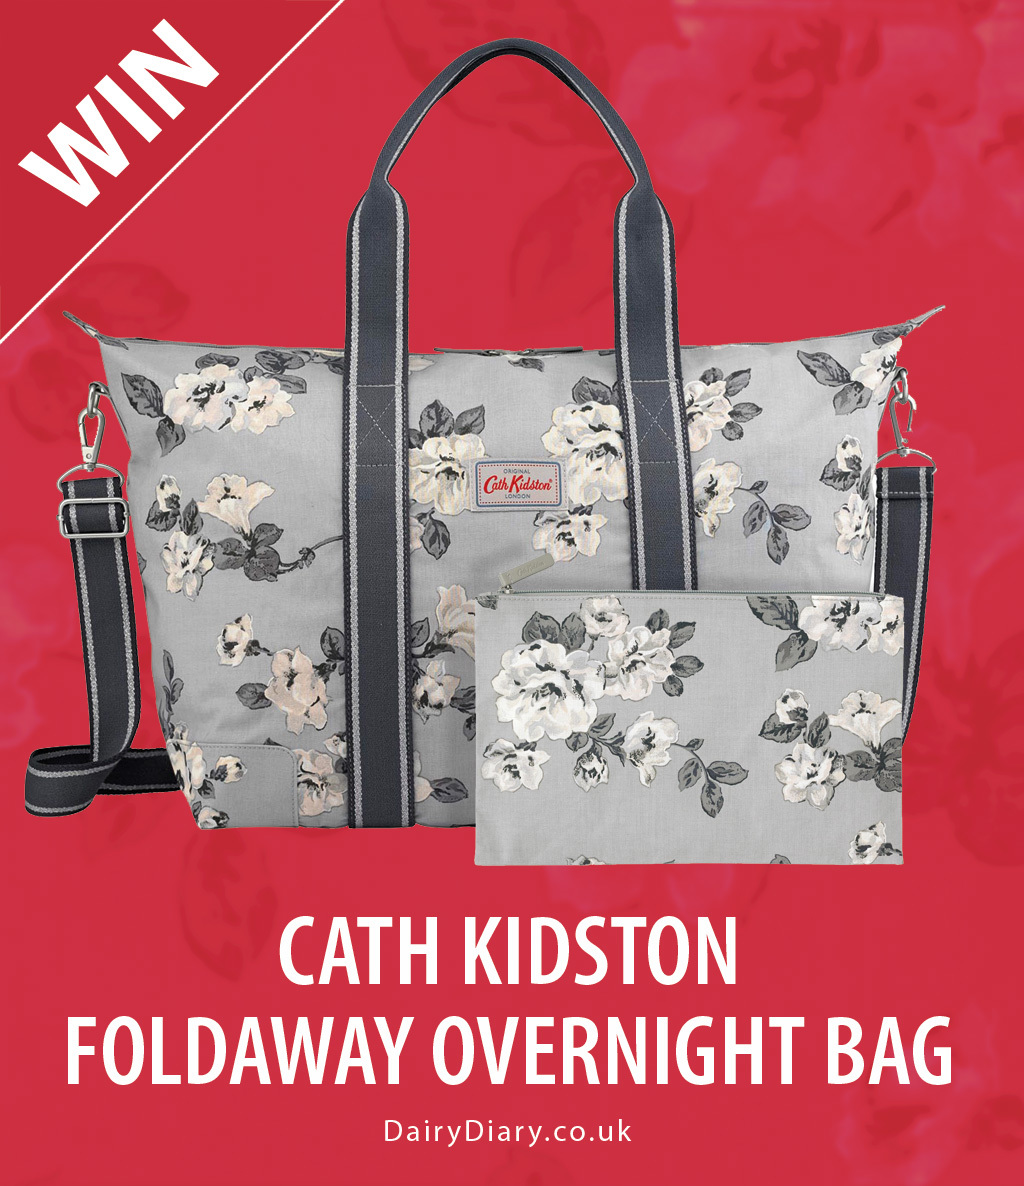 Win a Cath Kidston Foldaway Overnight Bag with the Dairy Diary